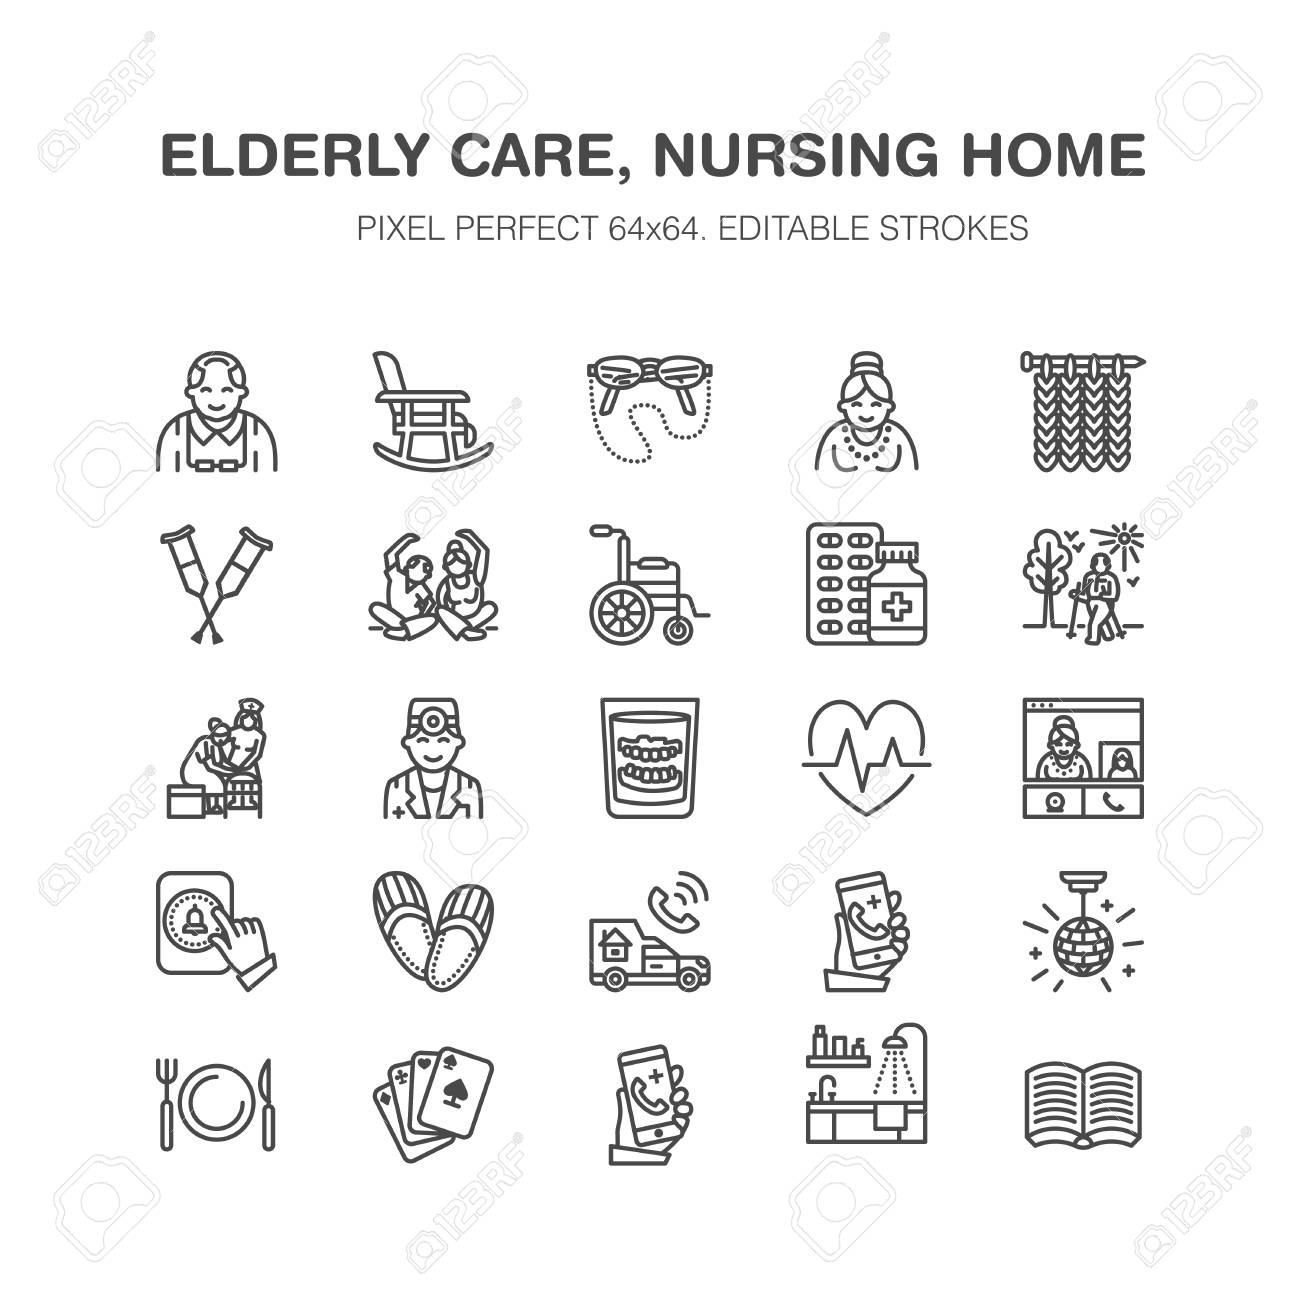 Elderly care vector flat line icons. Nursing home elements - old people activity, wheelchair, health check, hospital call button, grandfather, grandmather, doctor. Pixel perfect 64x64. - 91377053